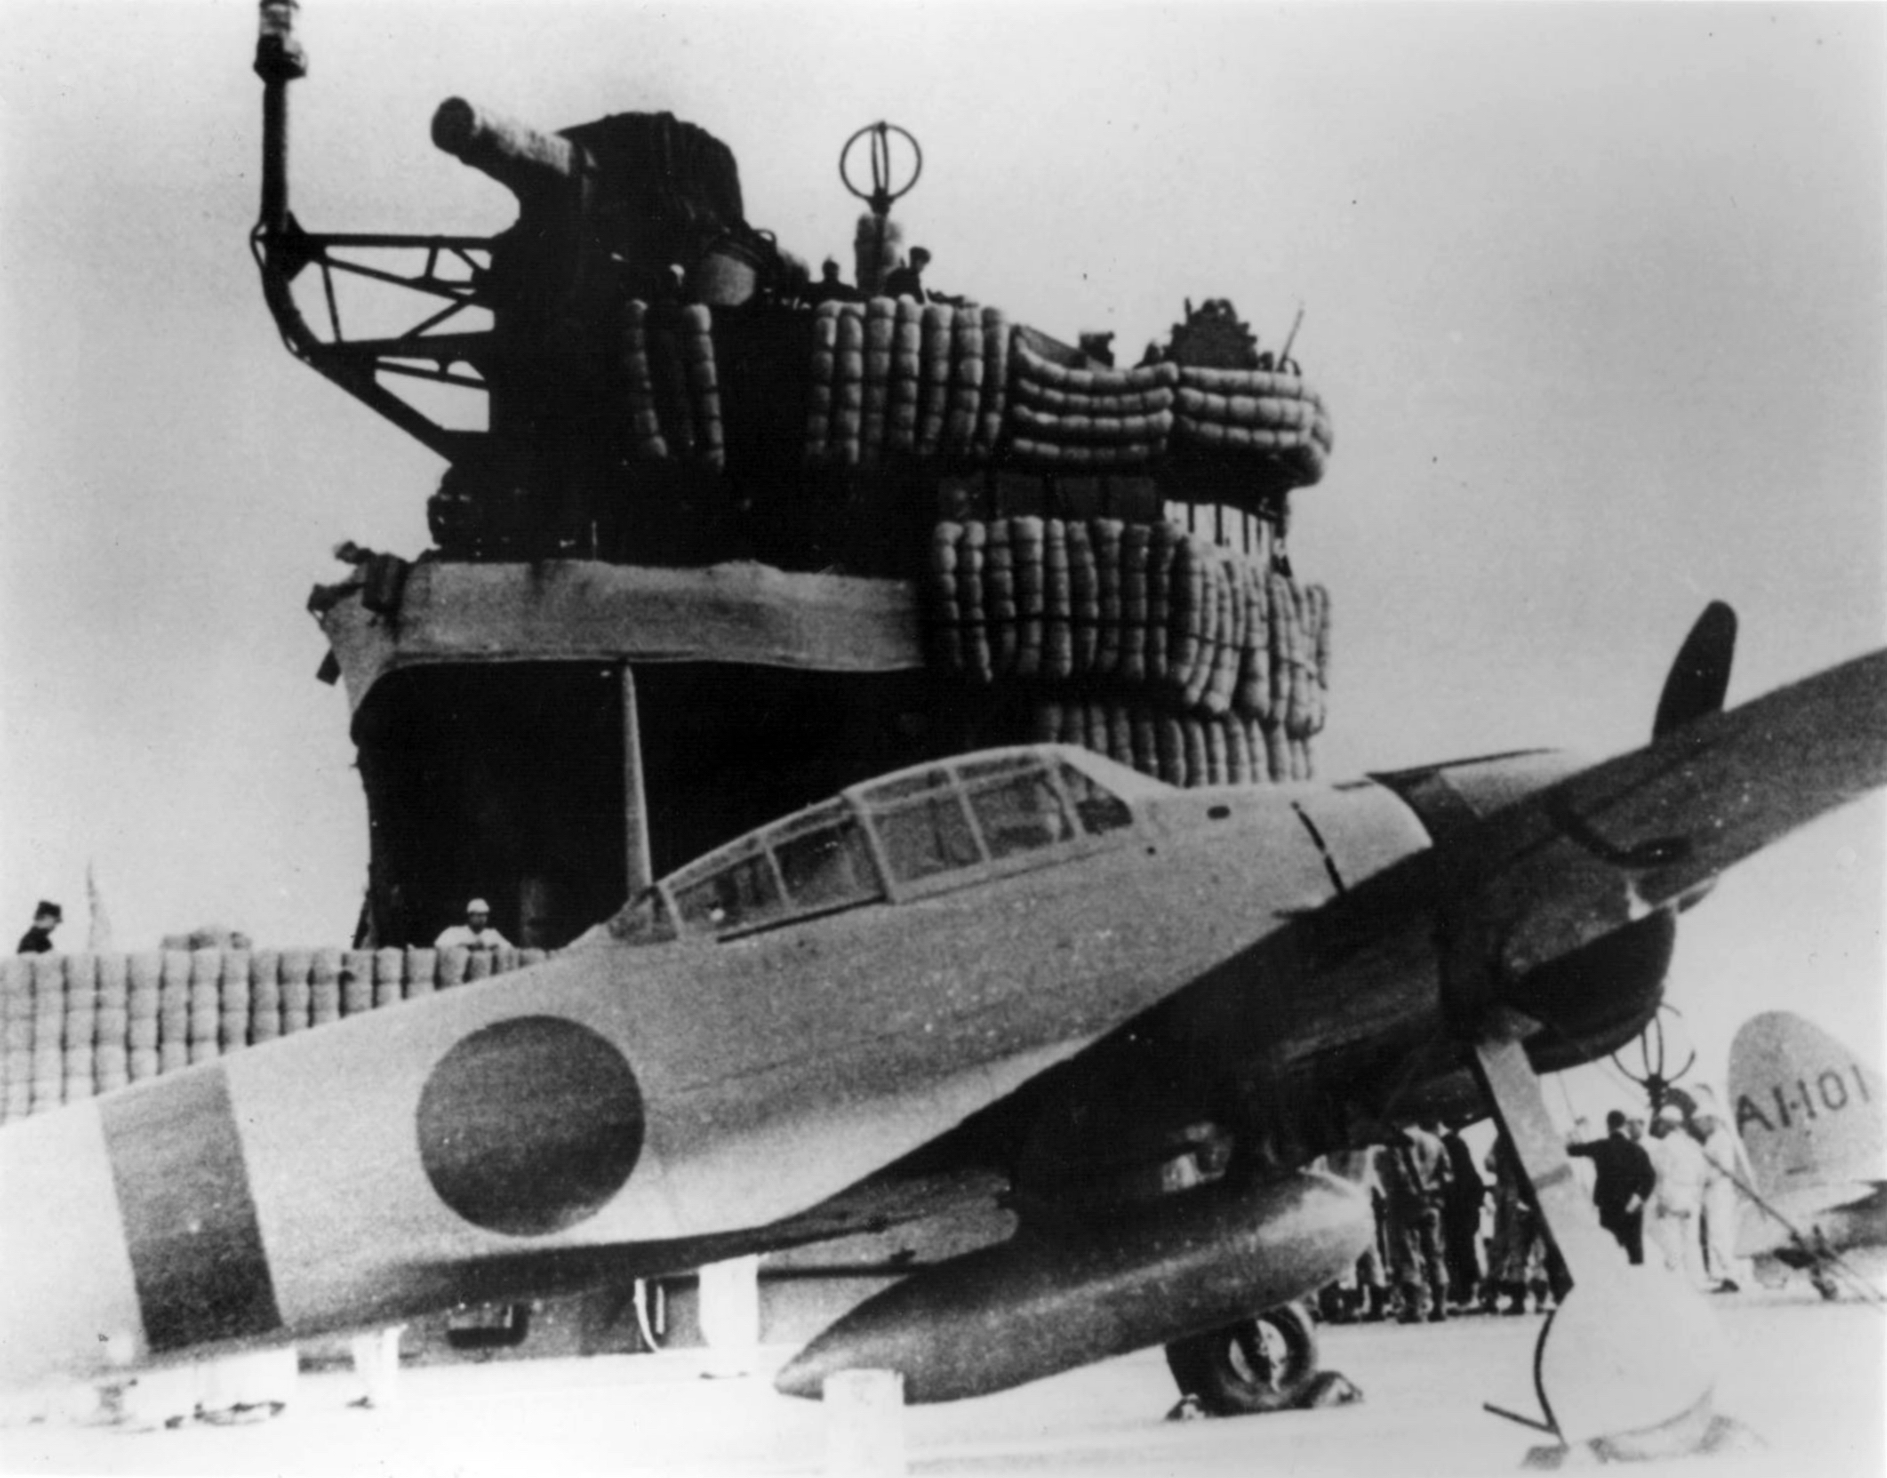 Mitsubishi A6M2 21 Zero fighter aboard the Imperial Japanese Navy carrier Akagi during Pearl Harbor 01